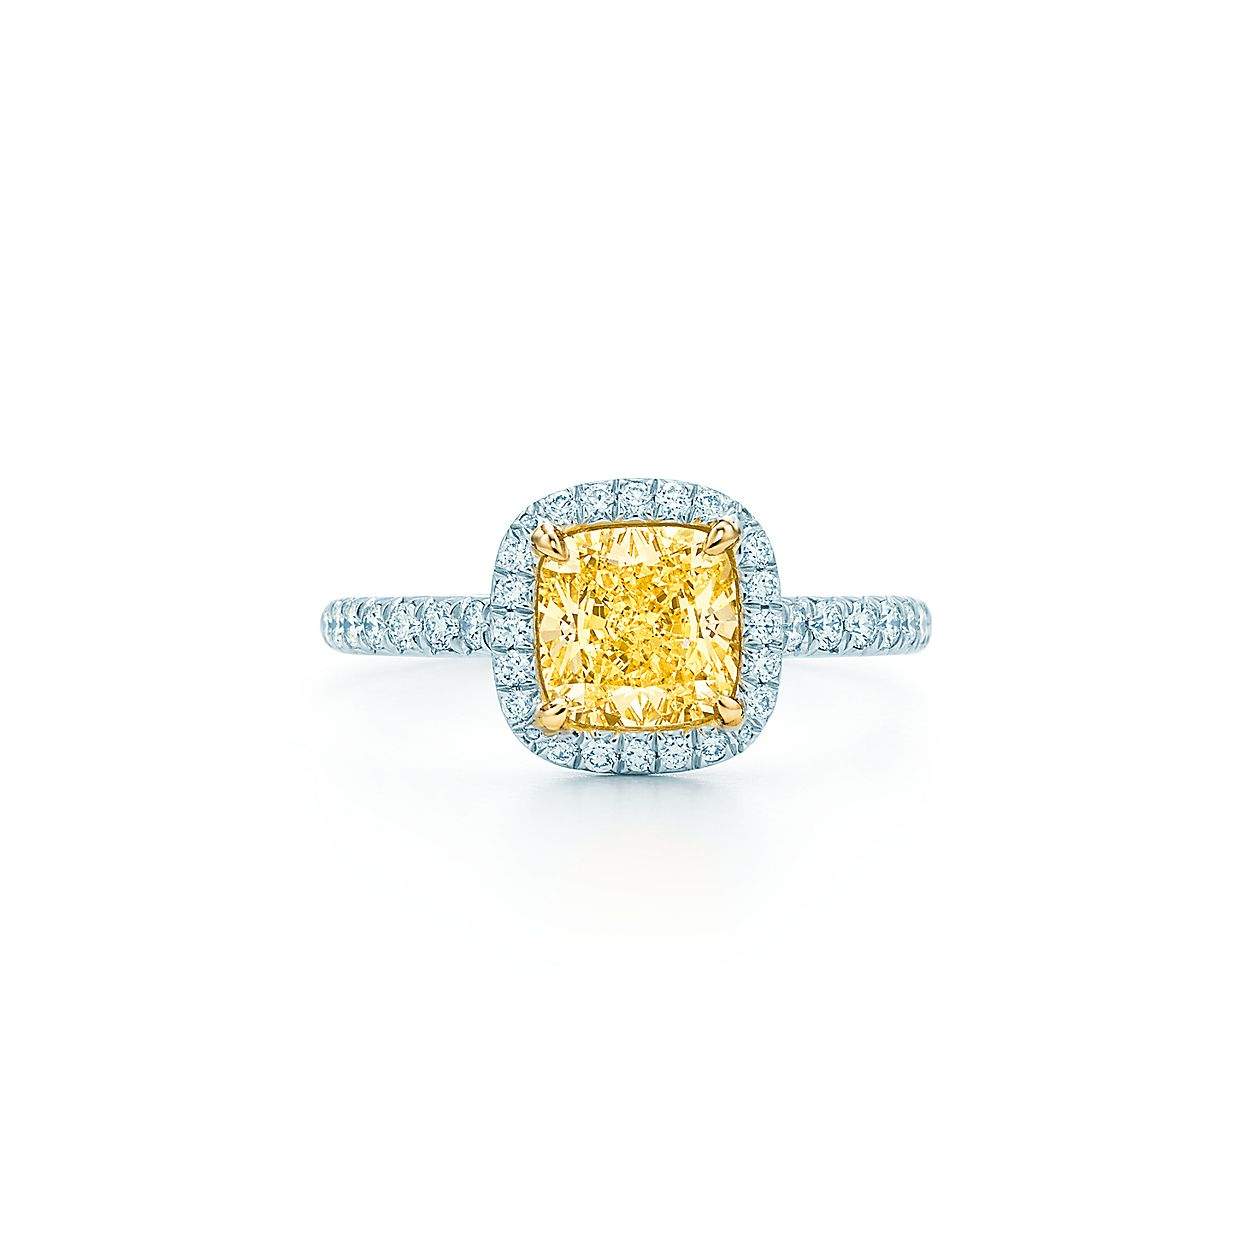 Tiffany Soleste Cushion Cut Halo Engagement Ring With A Diamond Platinum Band